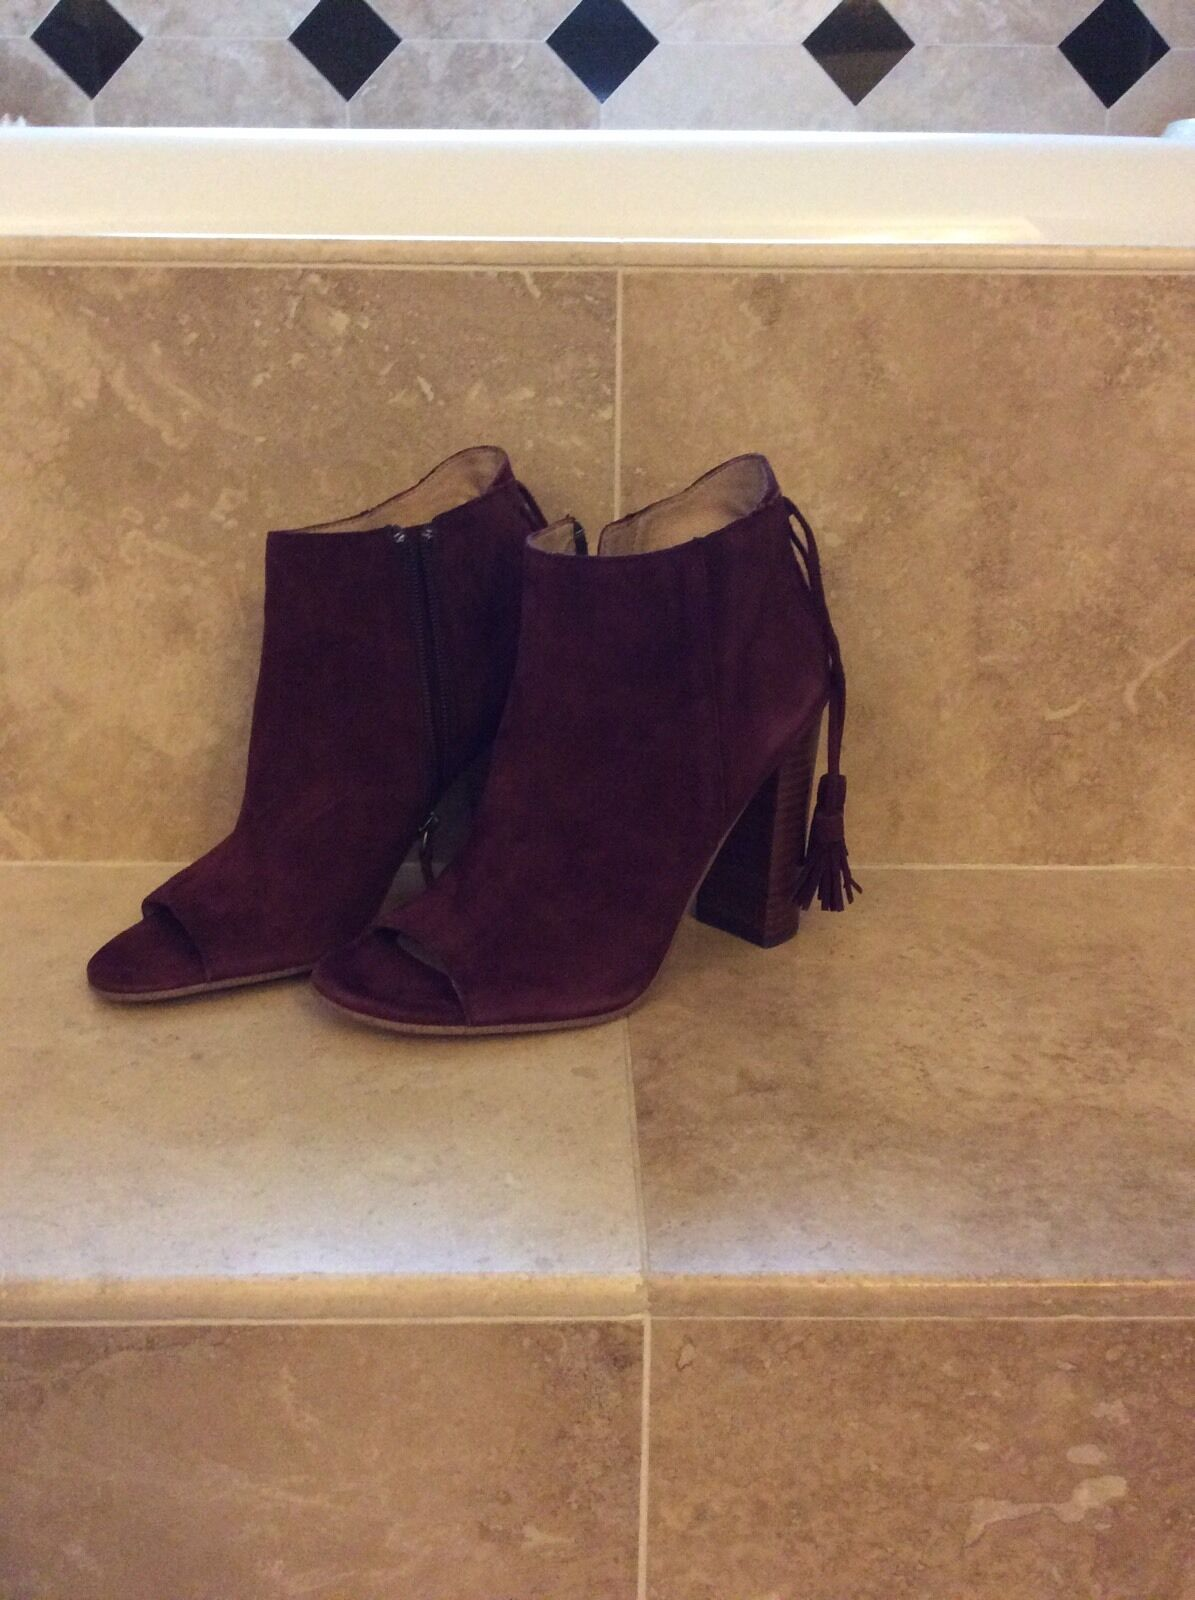 Halogen Boots Ankle Booties Size 6.5